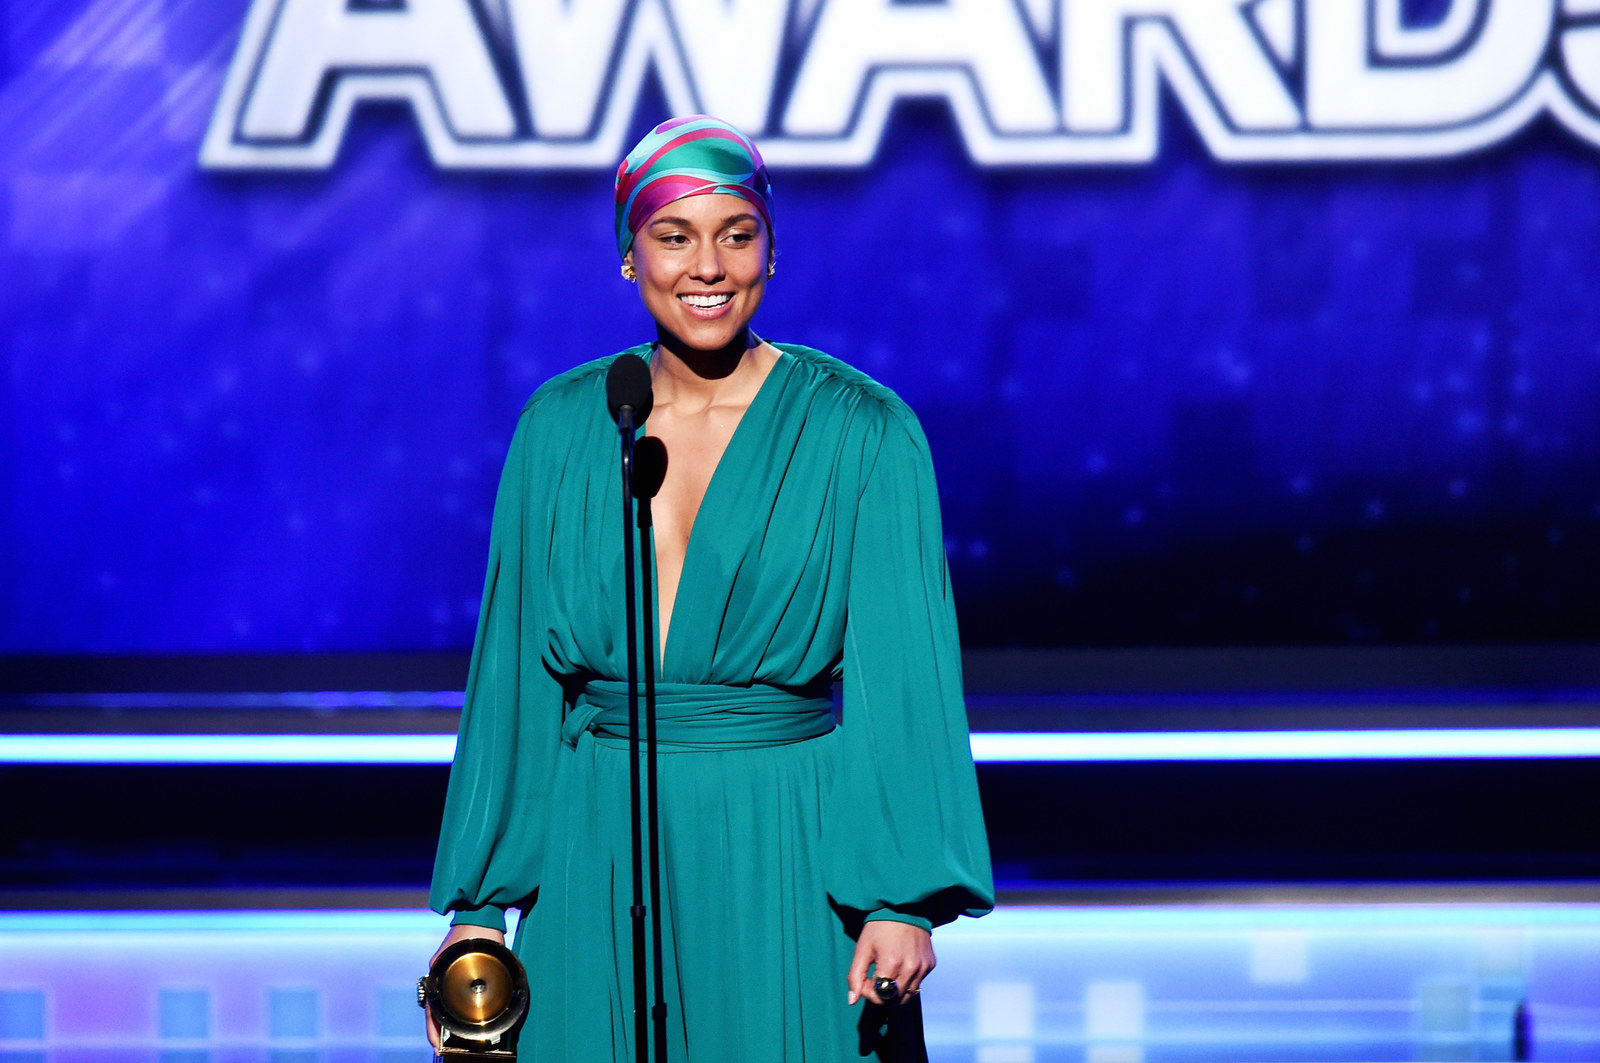 ICYMI, Alicia Keys was the host of the Grammy's this year.